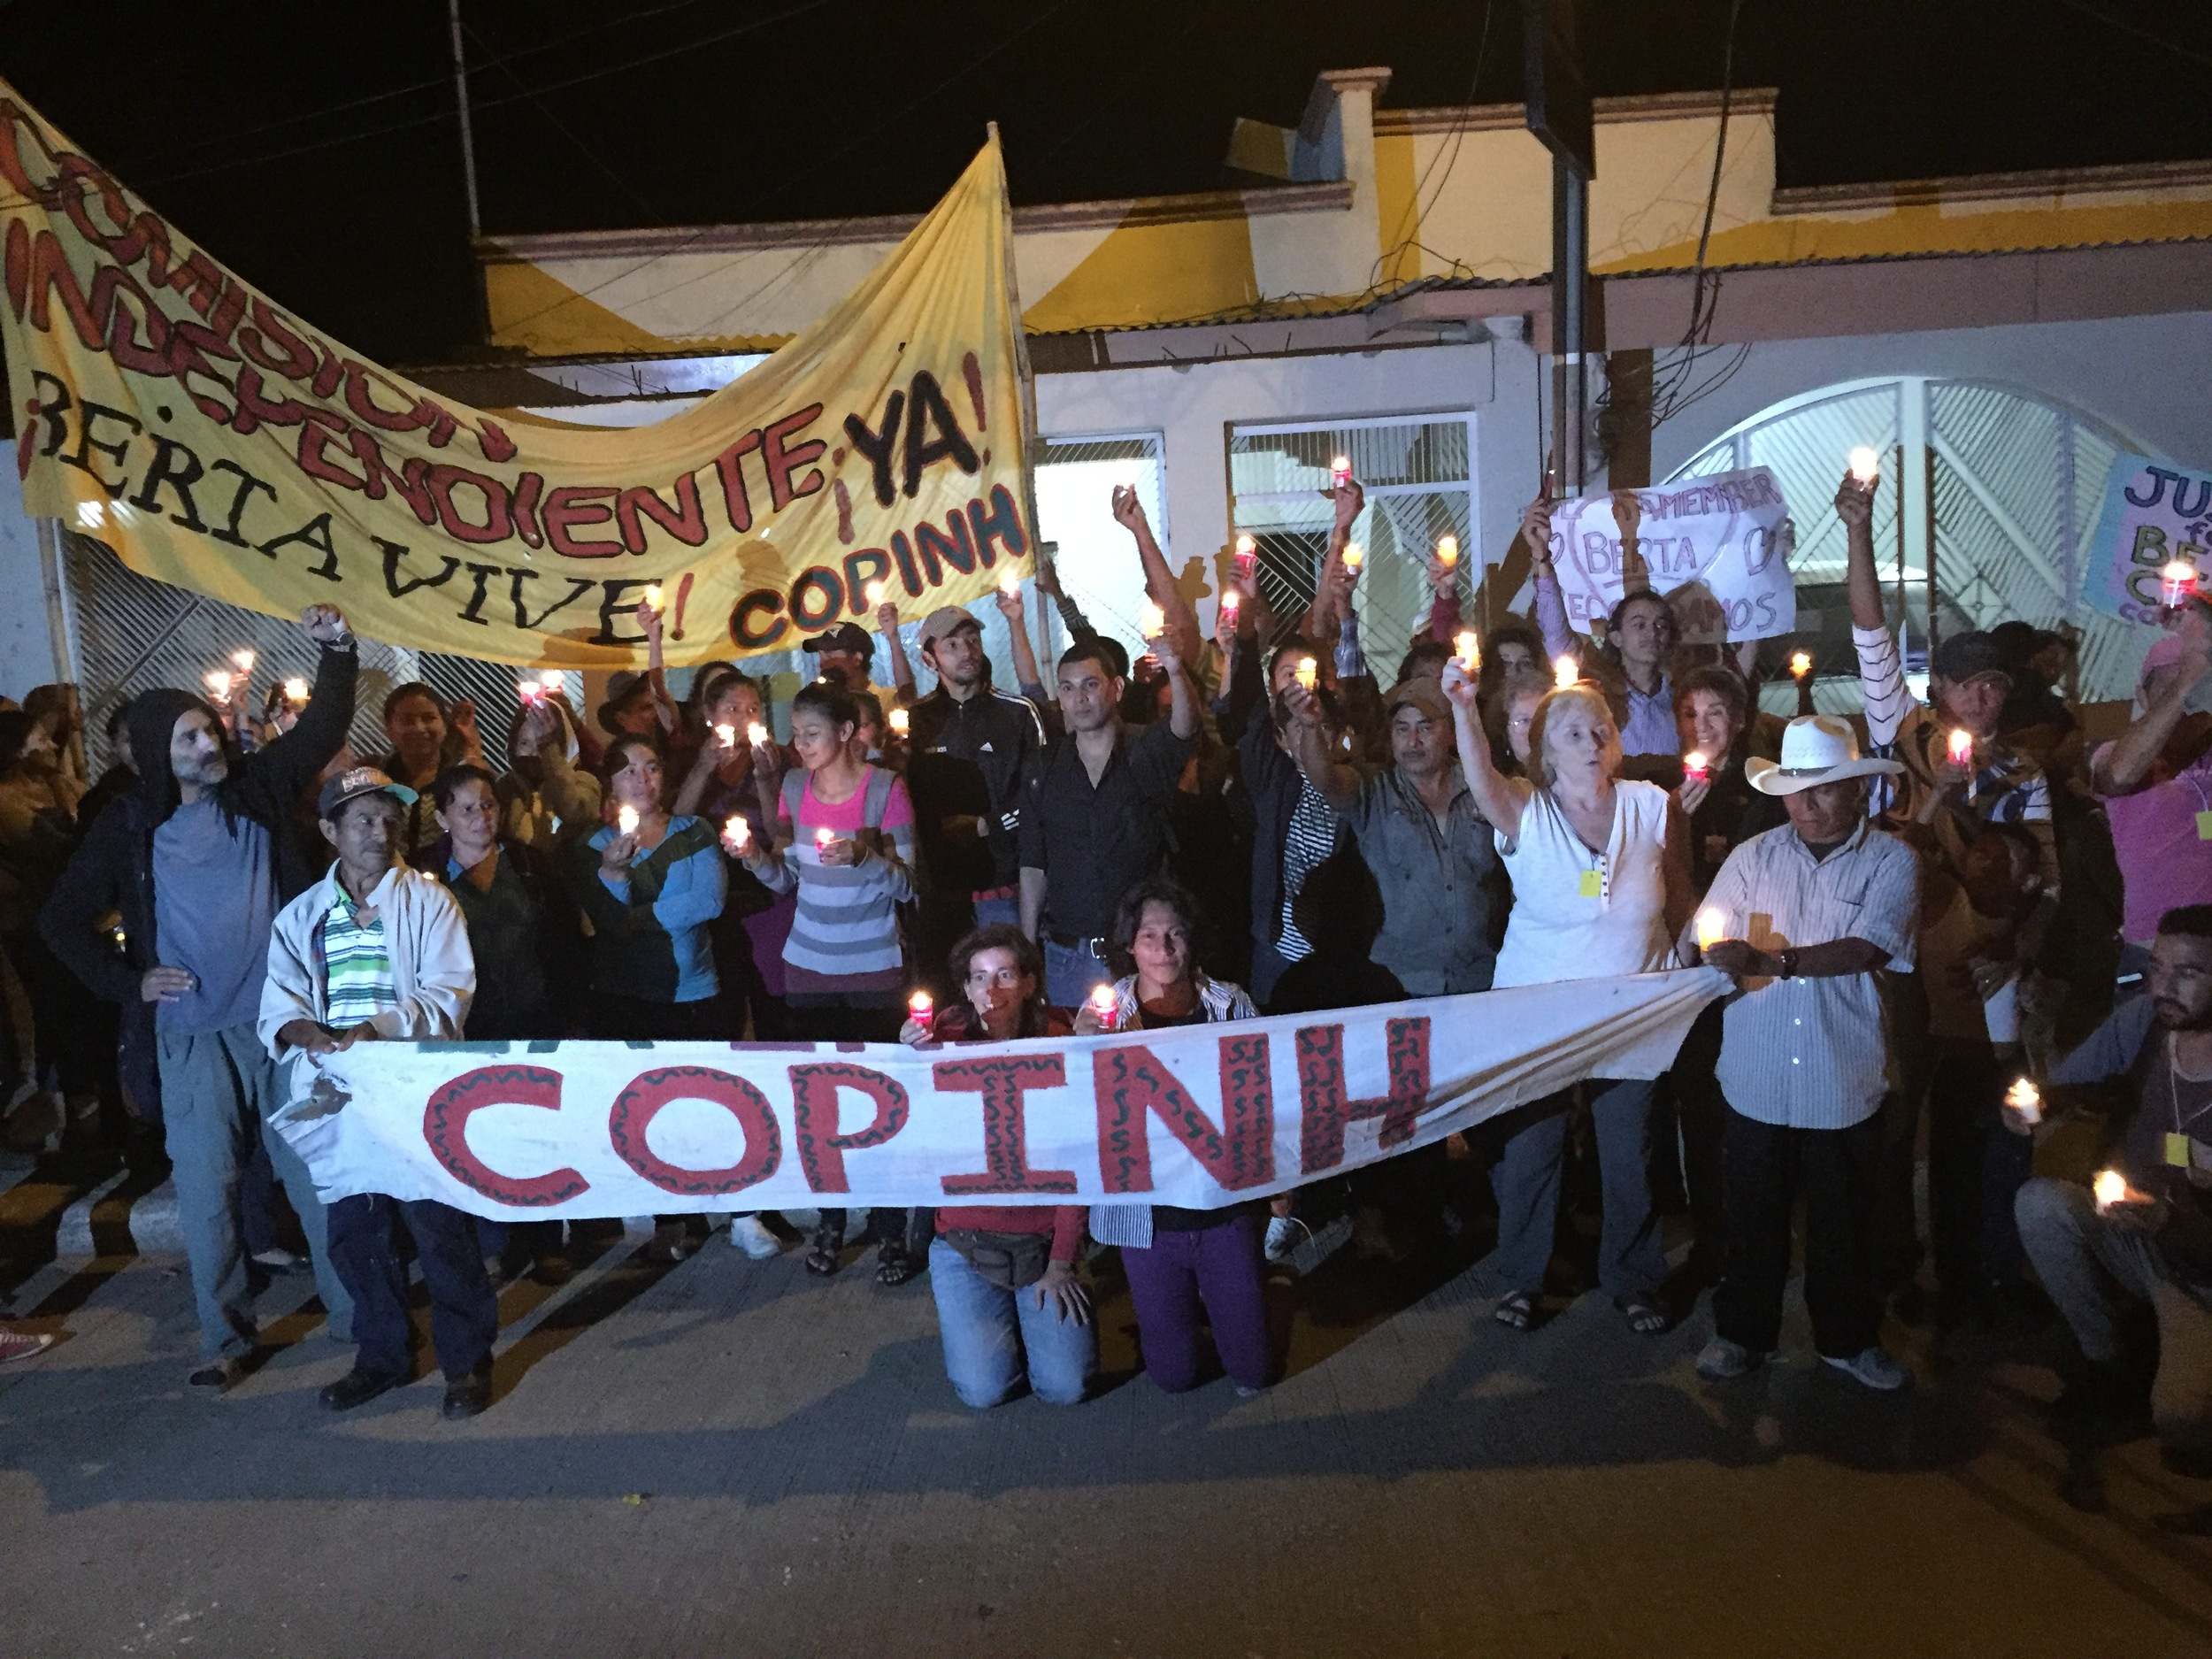 On July 2, the 4th anniversary of the assassination of Berta Caceres, we joined the Civic Council of Indigenous and Popular Organizations of Honduras (COPINH) outside of the Public Prosecutor's office in La Esperanza. They were demanding justice for Berta's death.